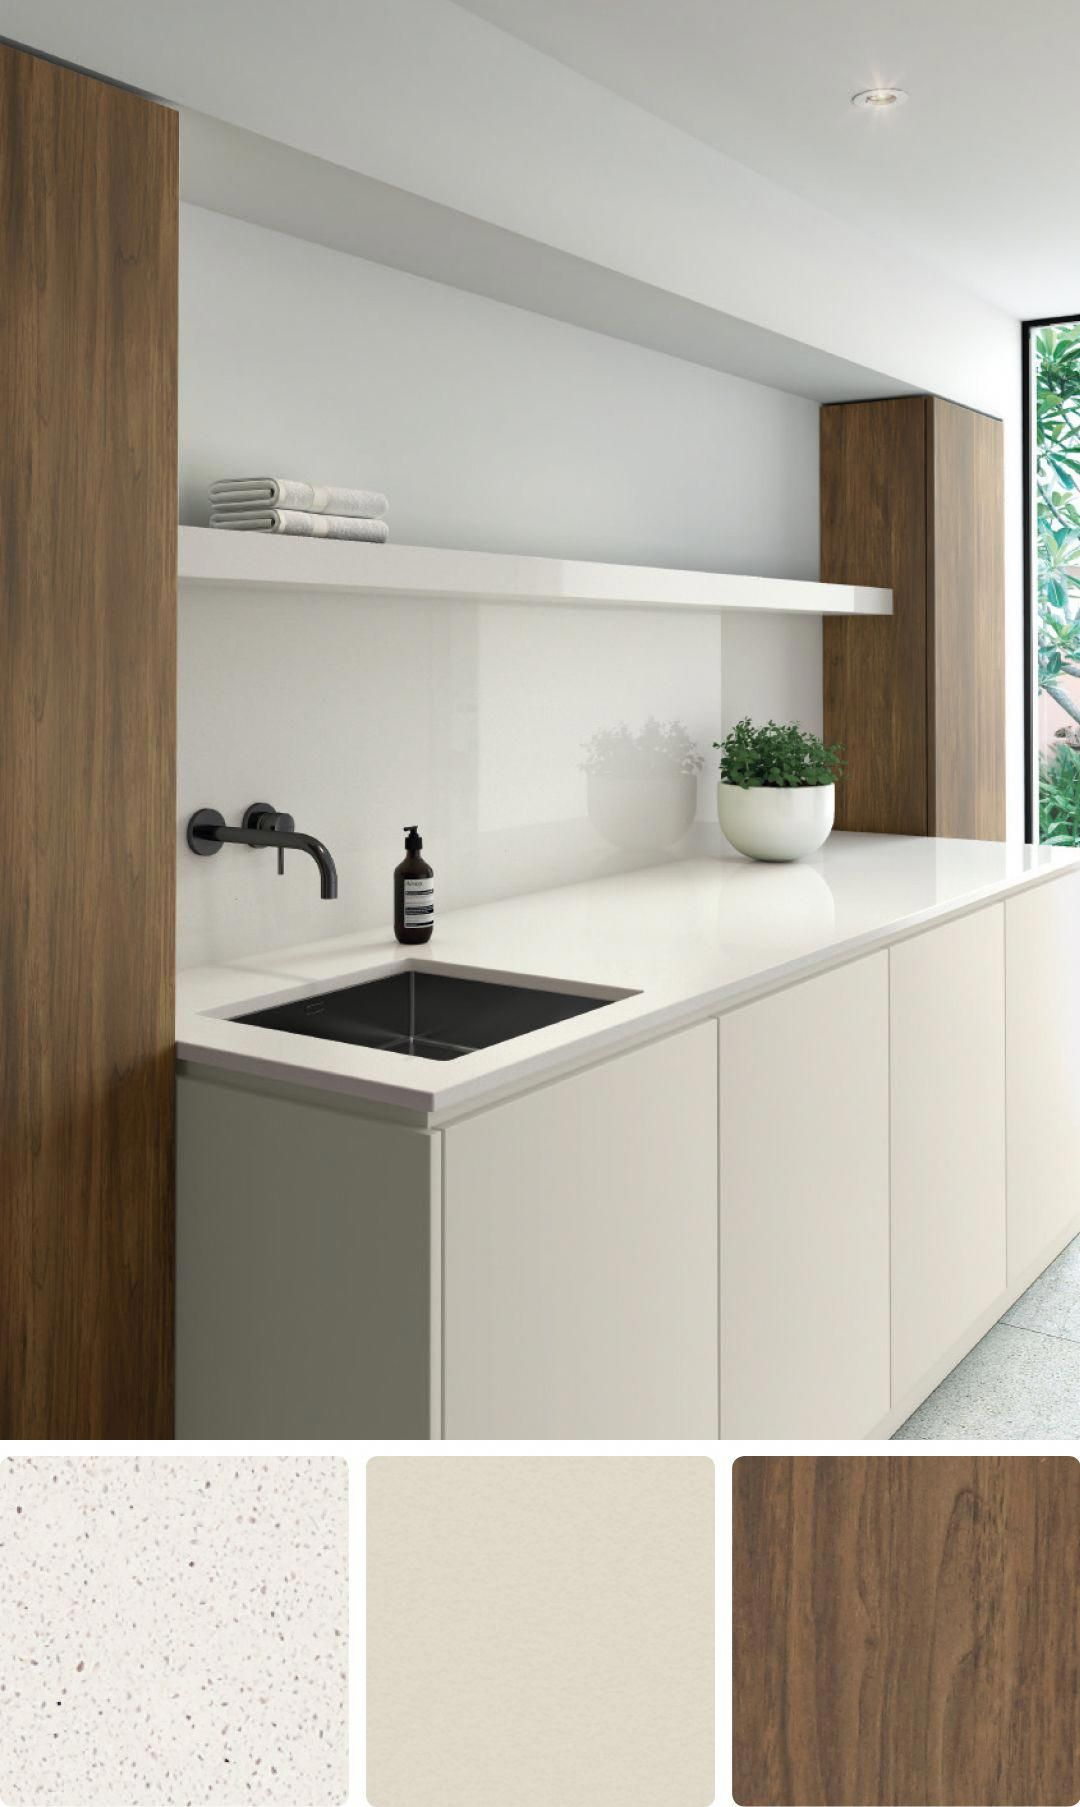 8 Beautiful White Colour Schemes For Kitchens Bathrooms And Laundries Kitchenideascolours Bathroom Color Schemes House Color Schemes Interior Laundry Room Colors